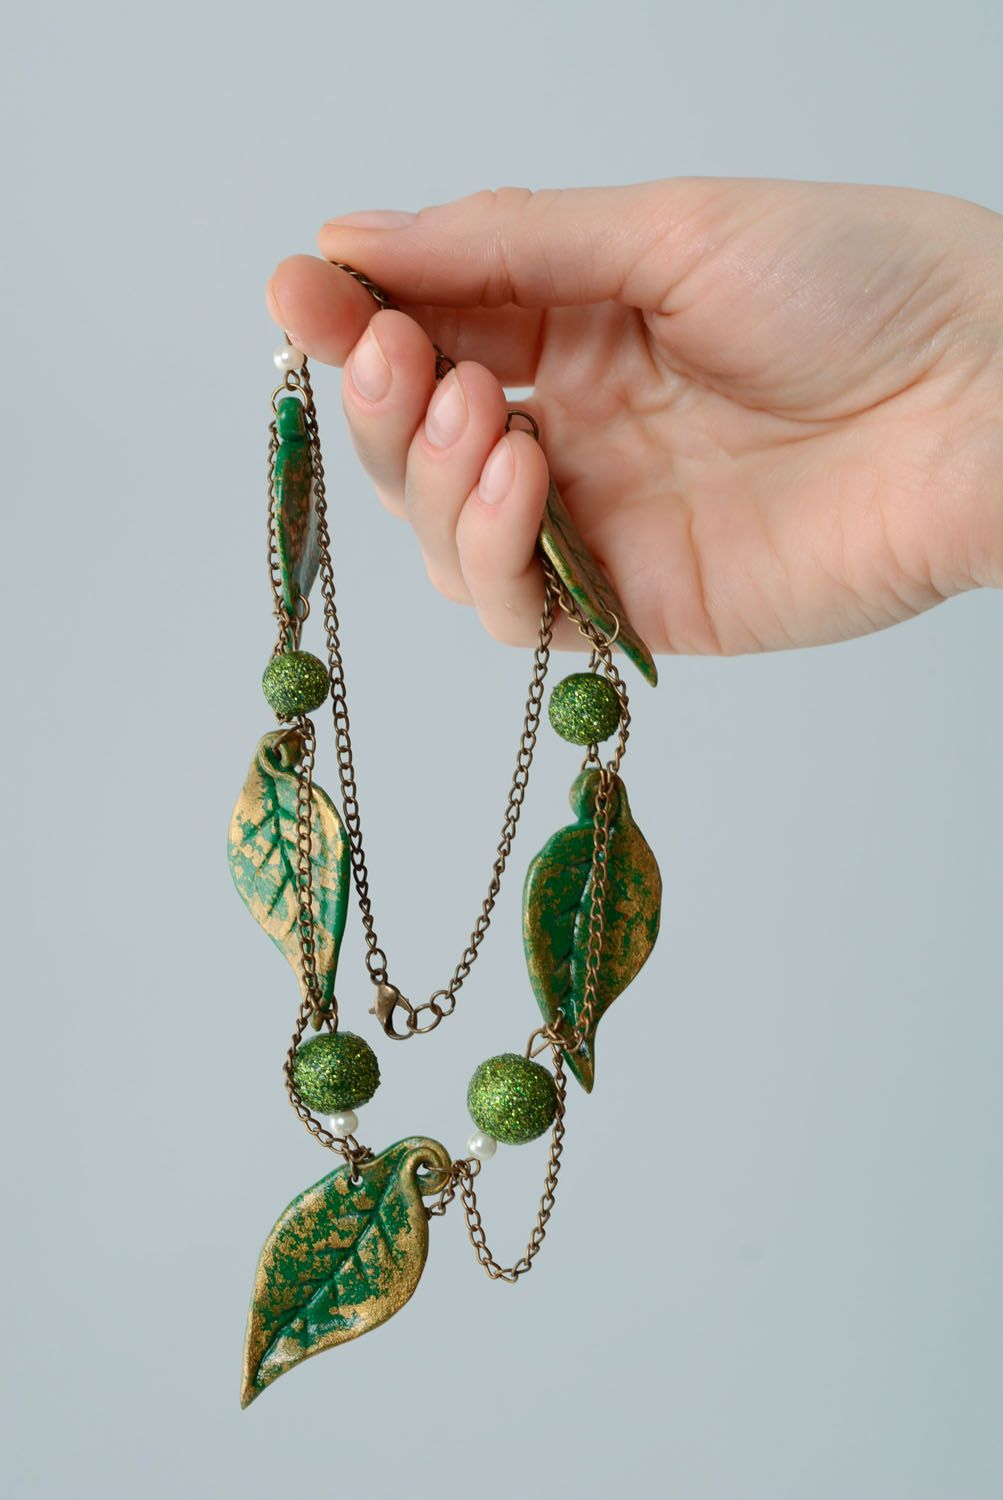 Necklace with polymer clay beads photo 4